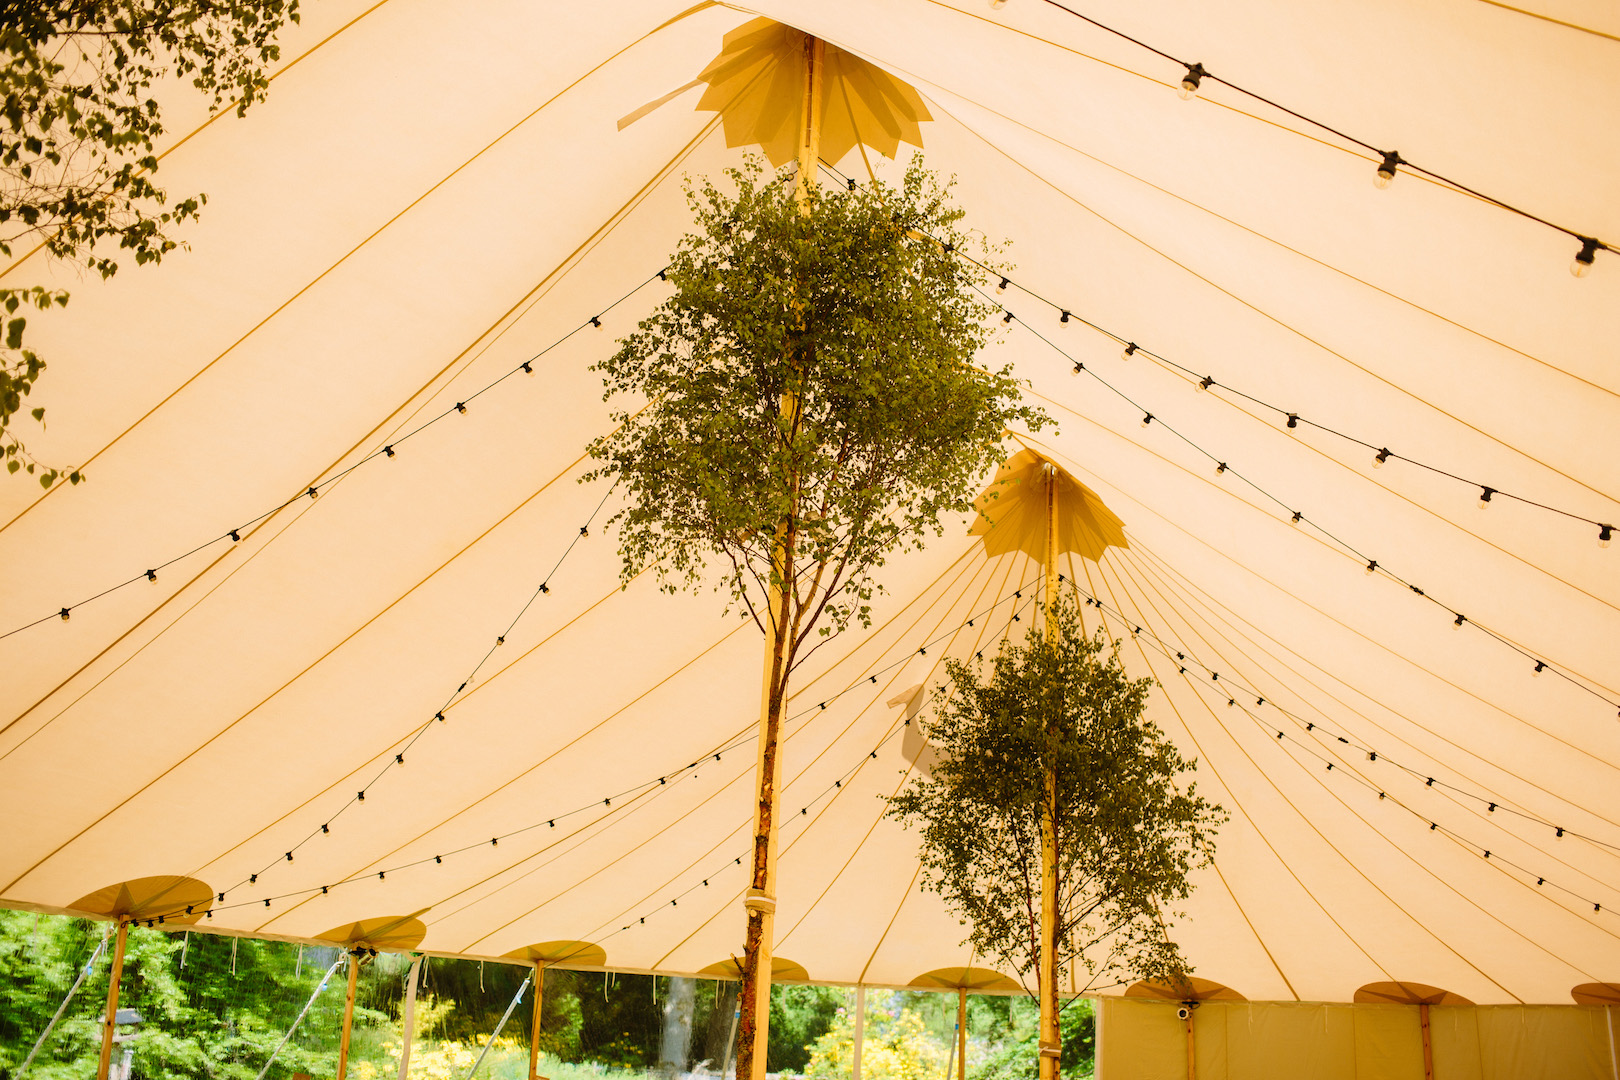 Alice & Alex's PapaKåta Sperry Wedding at Dunsinnan House, Scotland- Festoon Lights by Eilidh Sutherland Photography